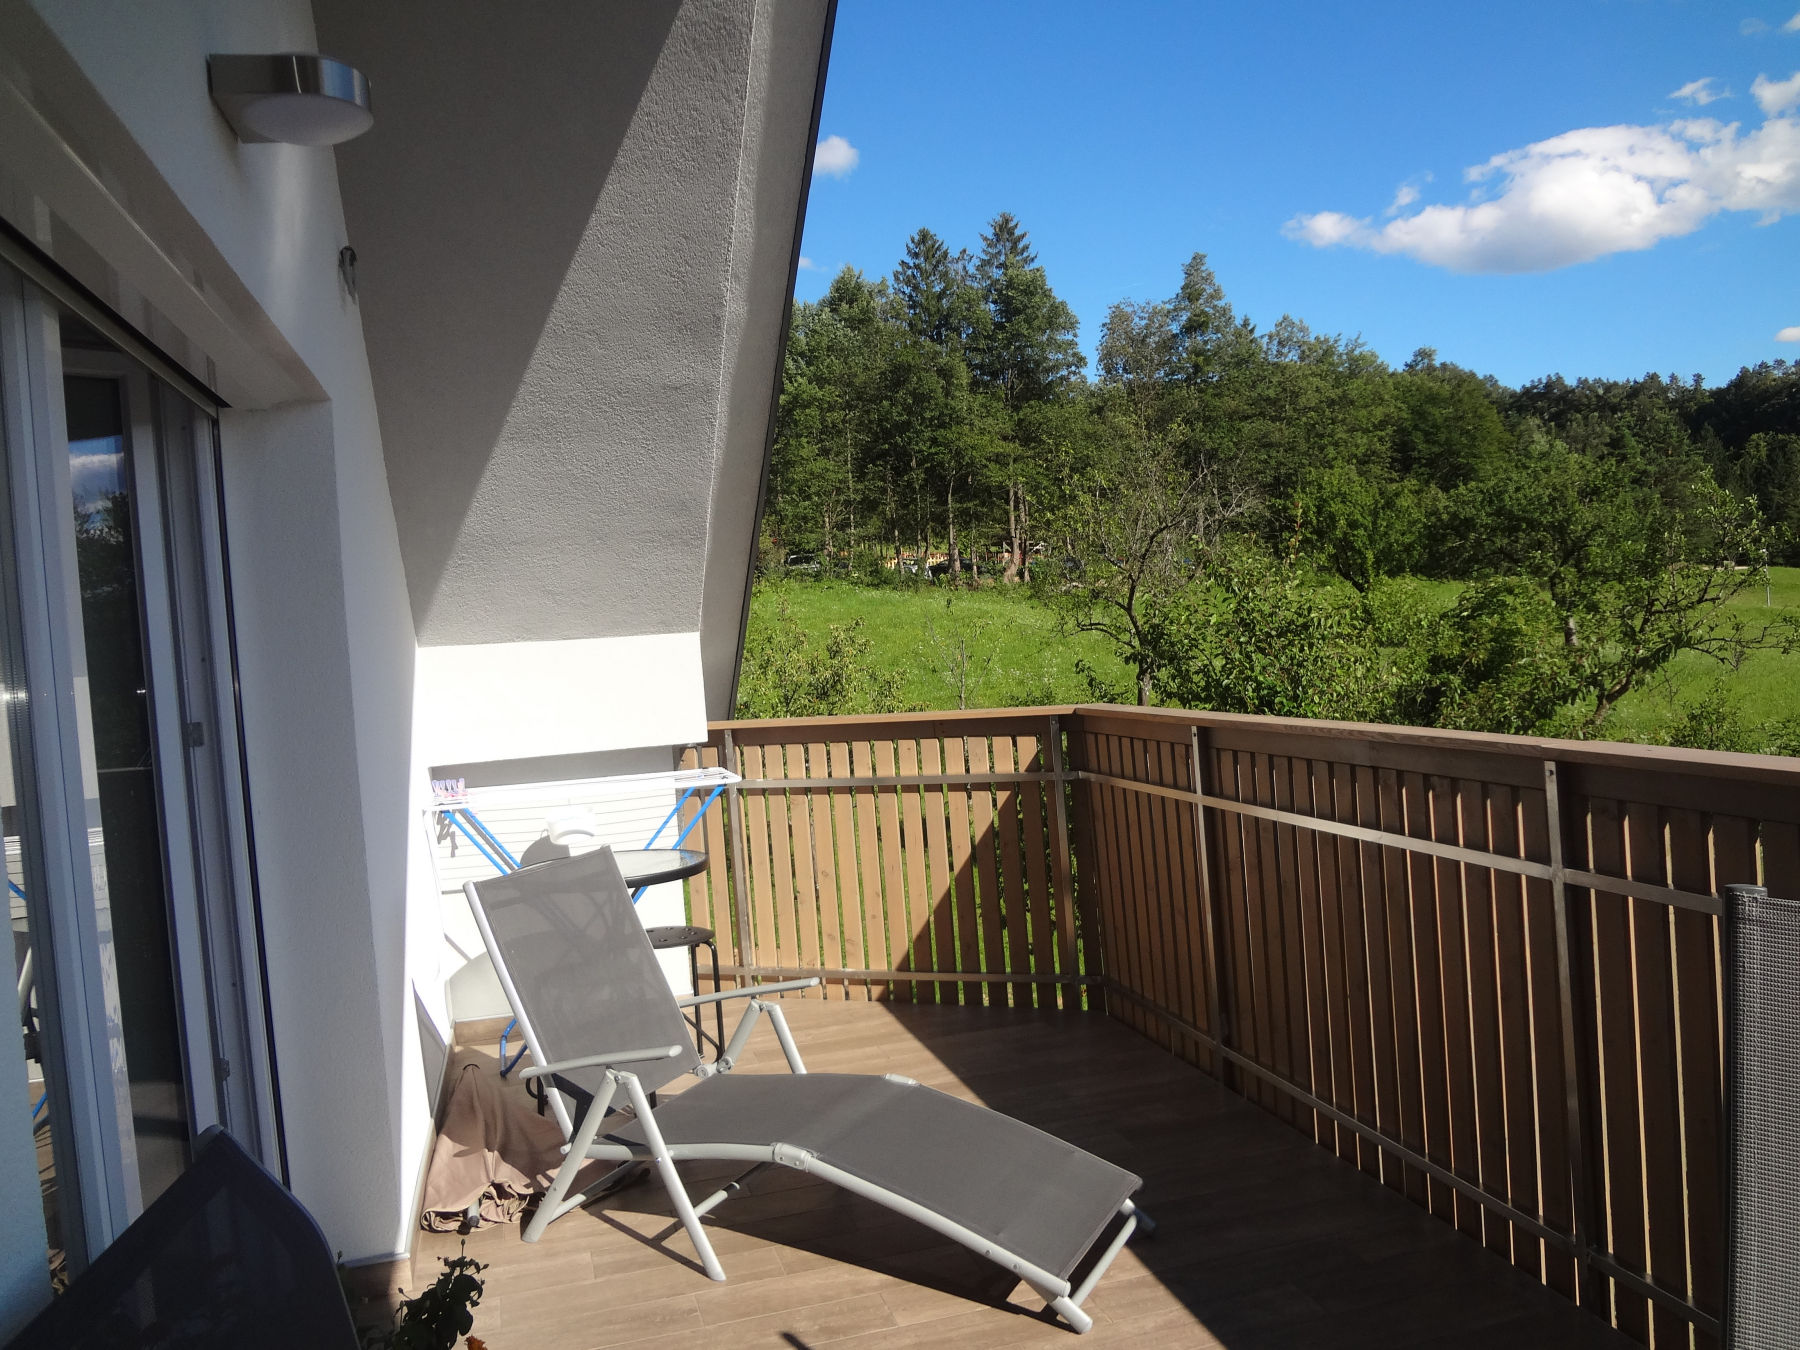 A sunbath chair on the balcony of the Fine Stay Apartment in the Bled Area Of Slovenia